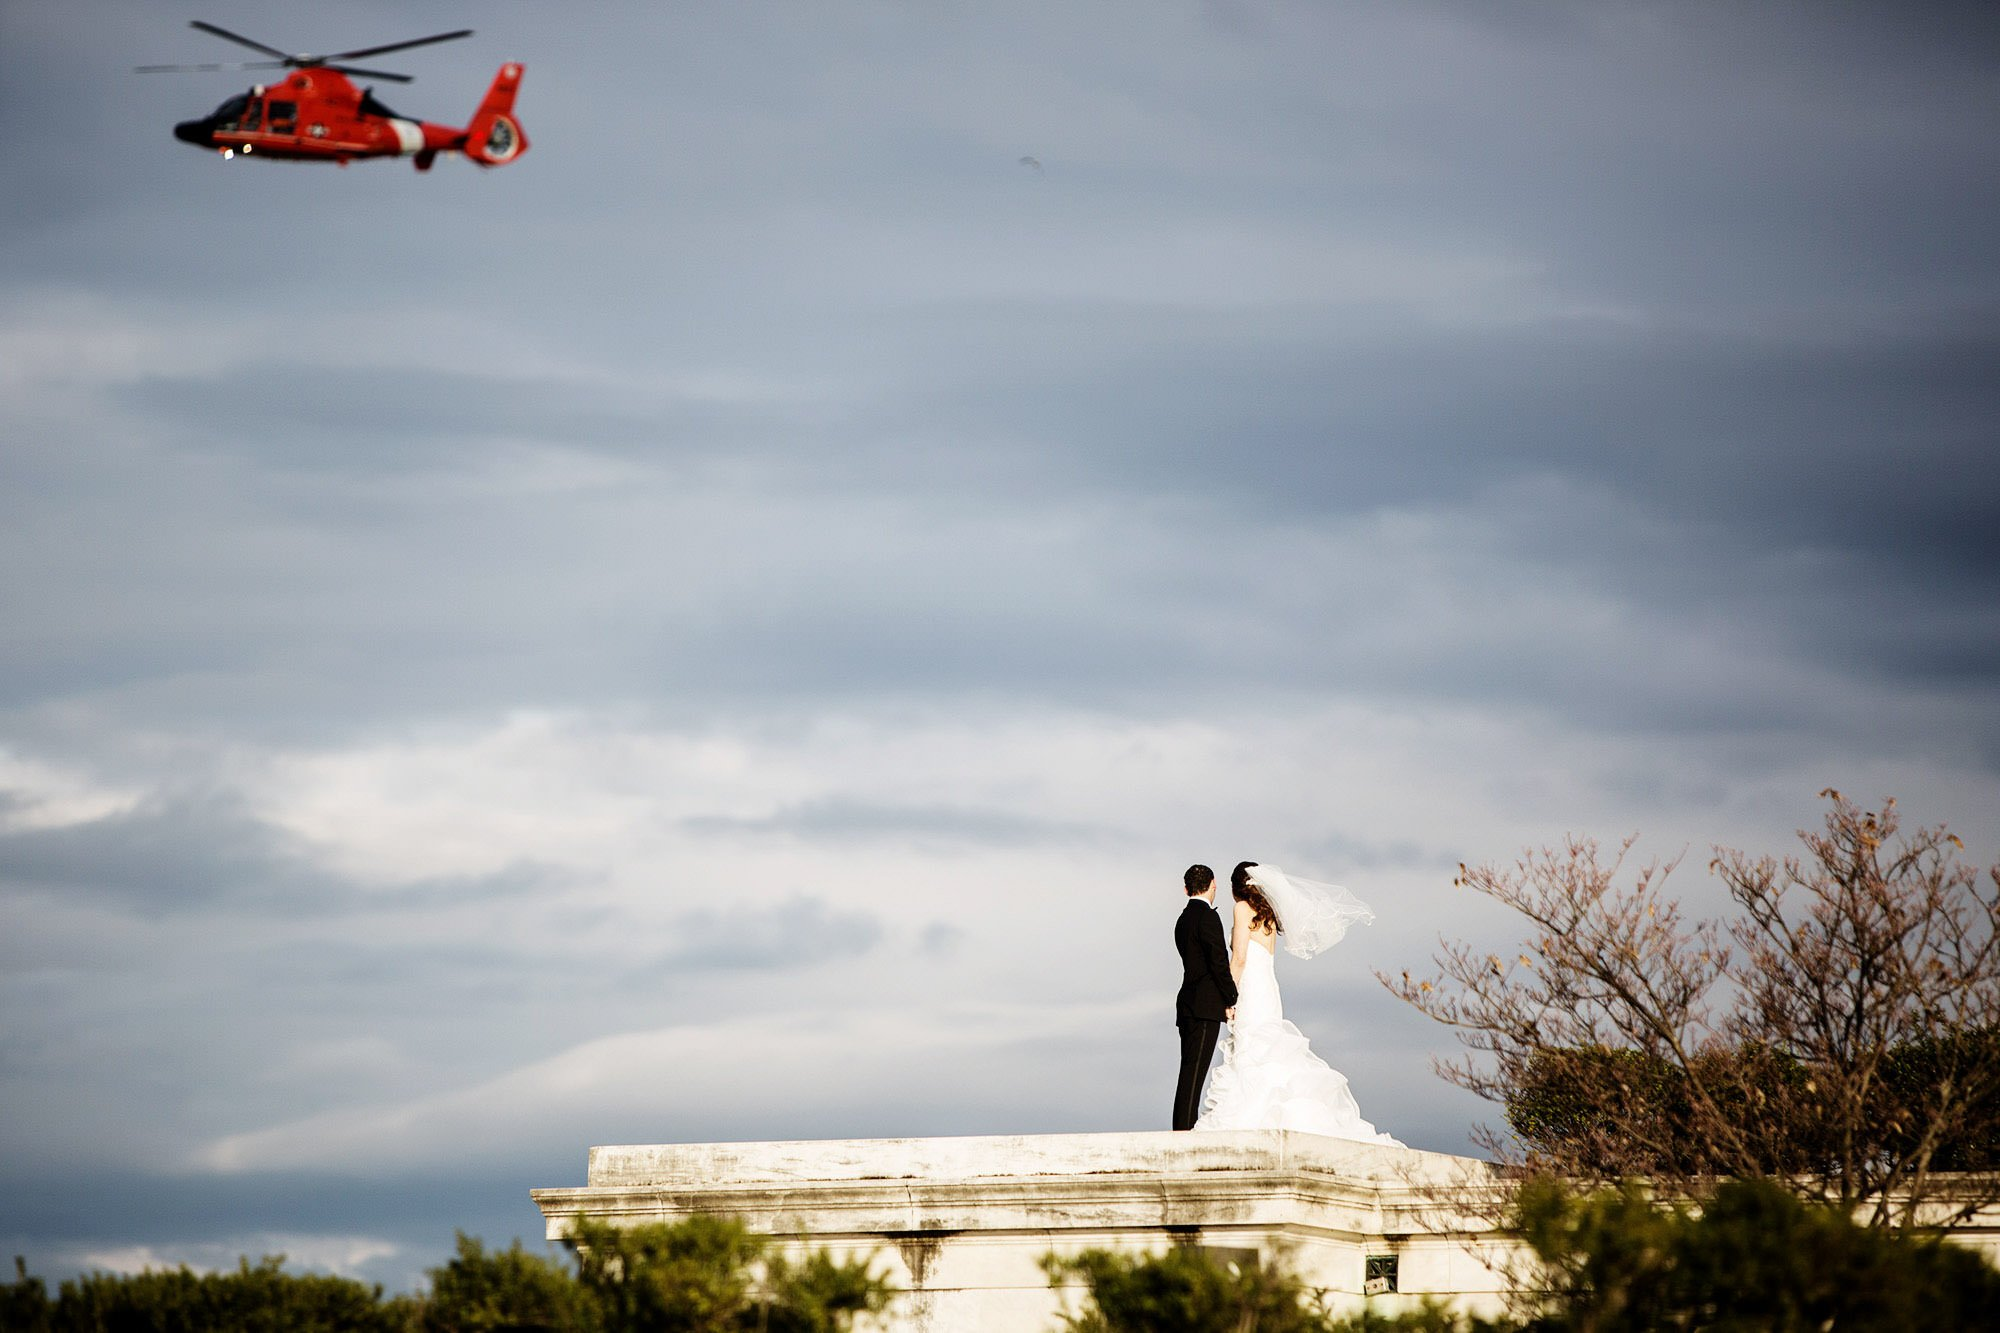 The couple watches as a helicopter passes overhead at the Jefferson Memorial in Washington, DC.